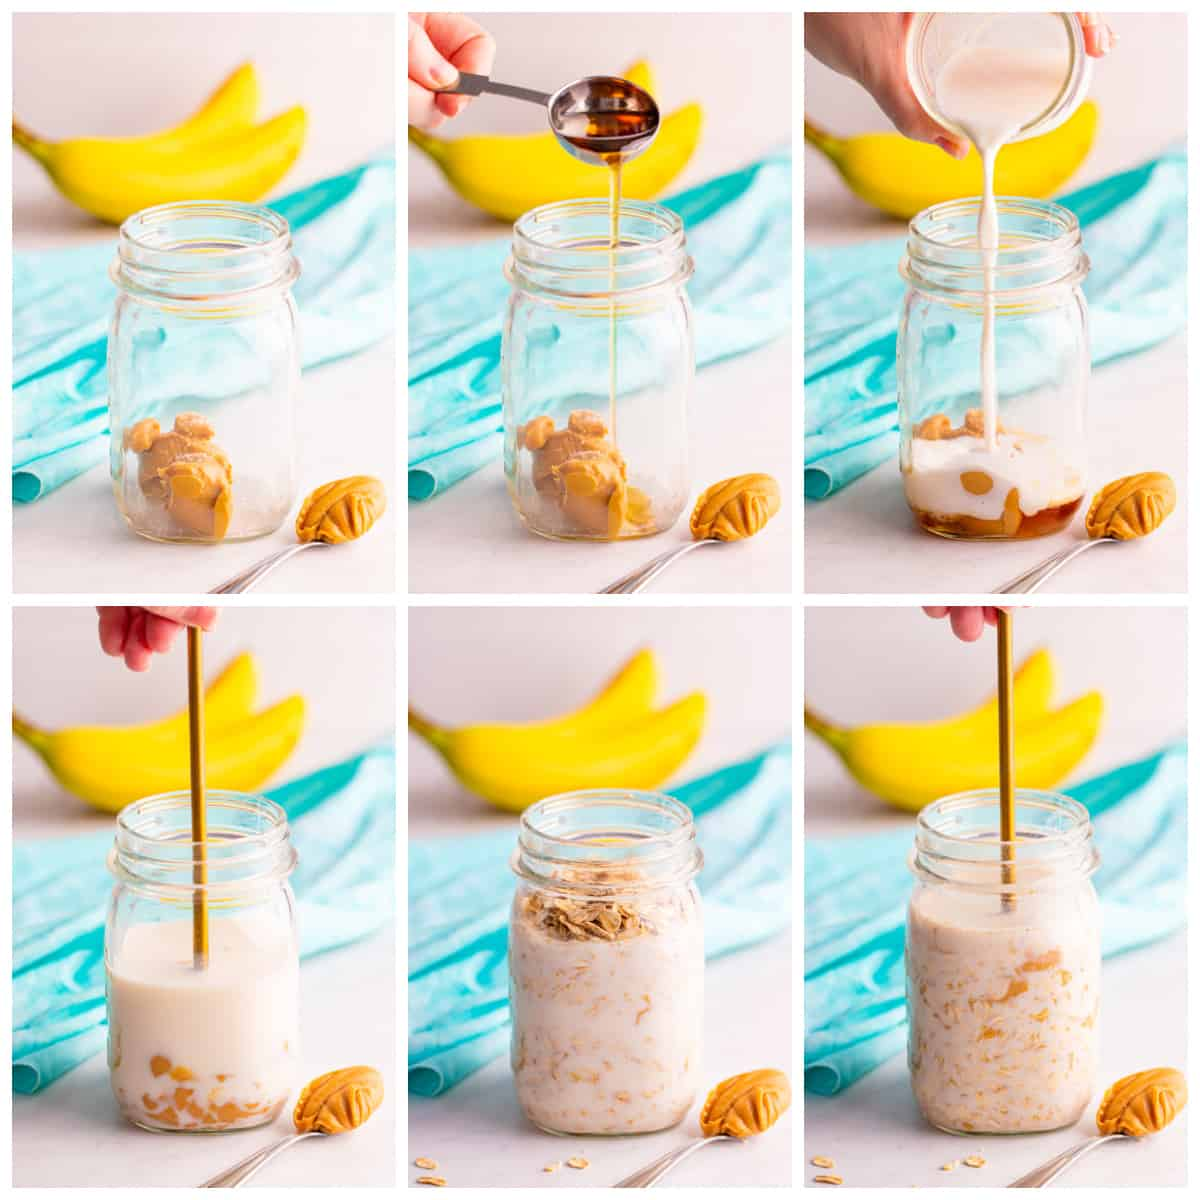 Step by step photos on how to make Peanut Butter Overnight Oats